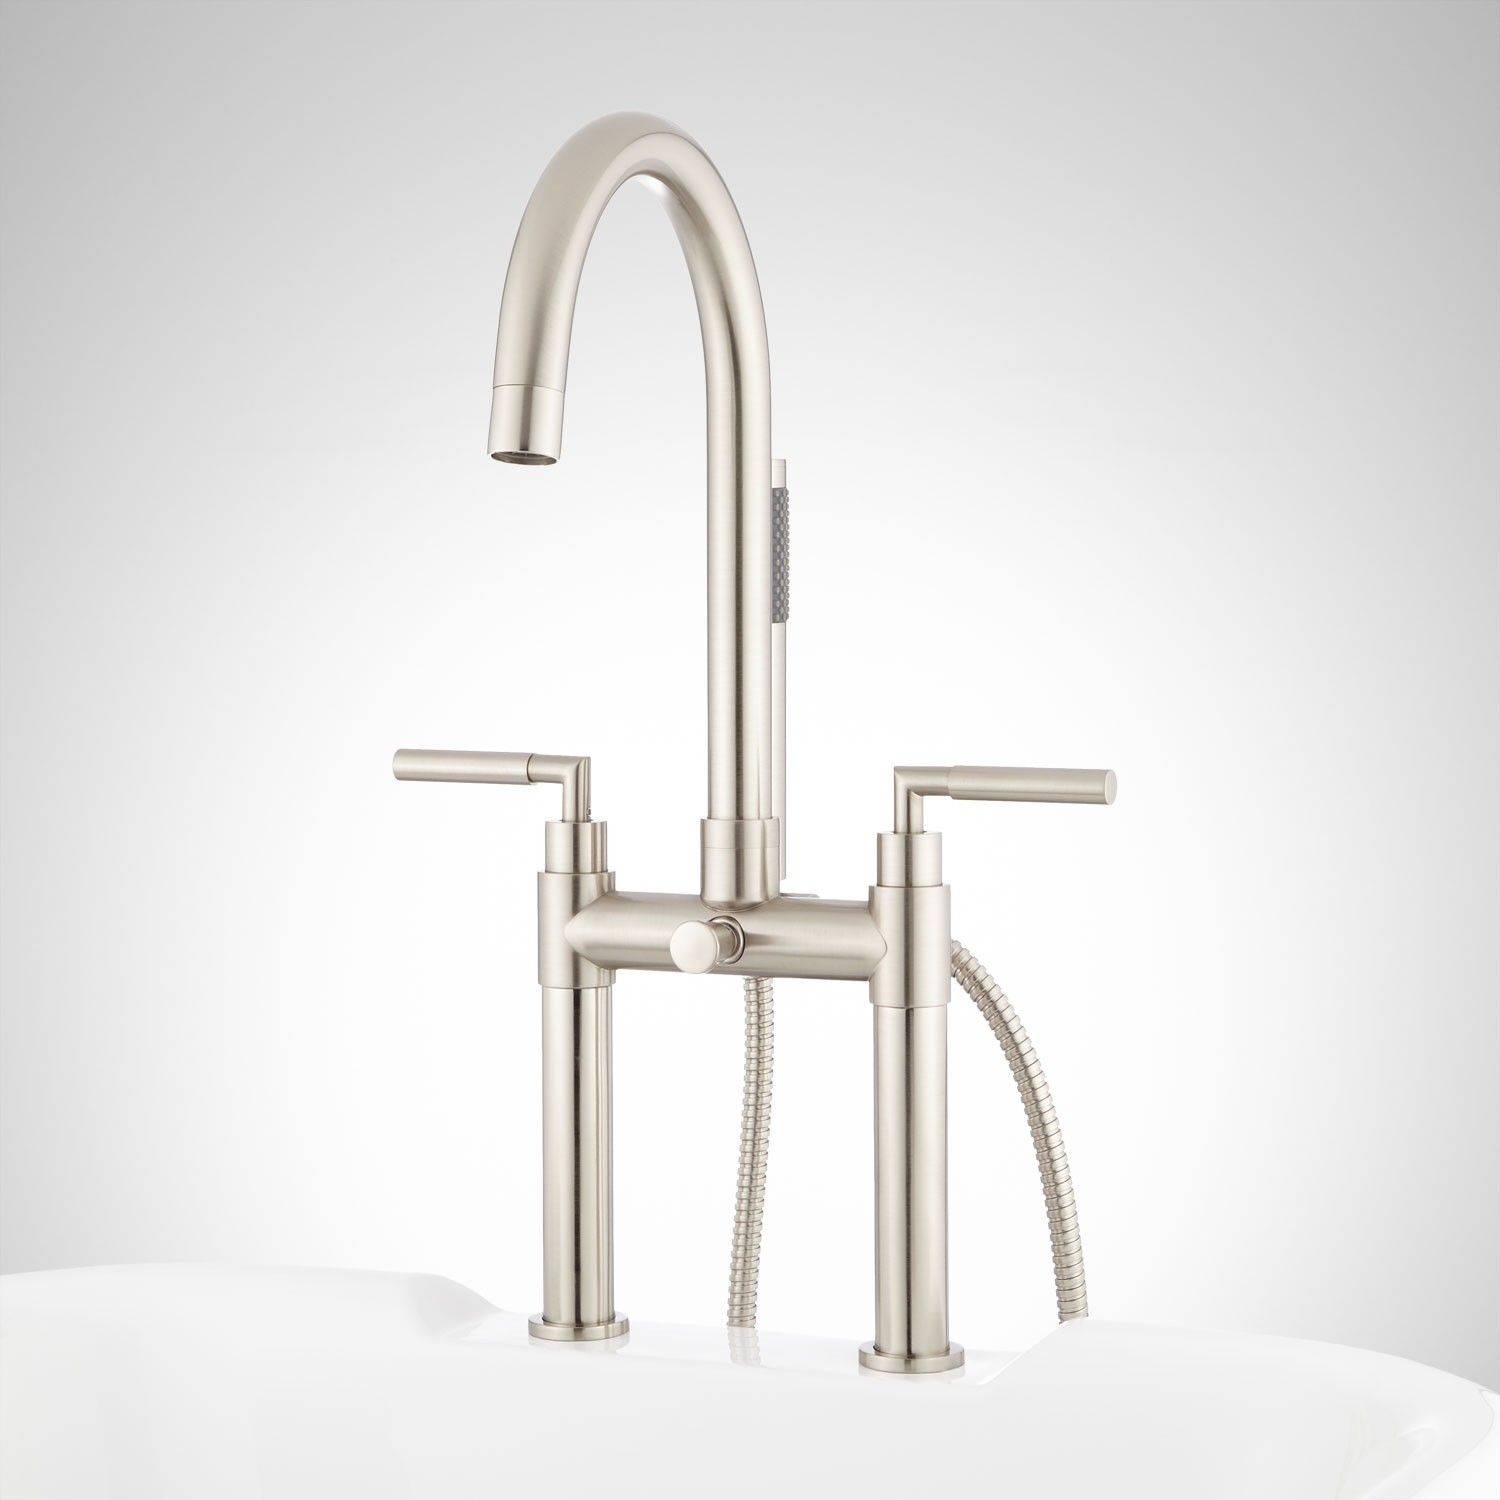 Desma Deck Mount Tub Faucet And Hand Shower With Images Tub Faucet